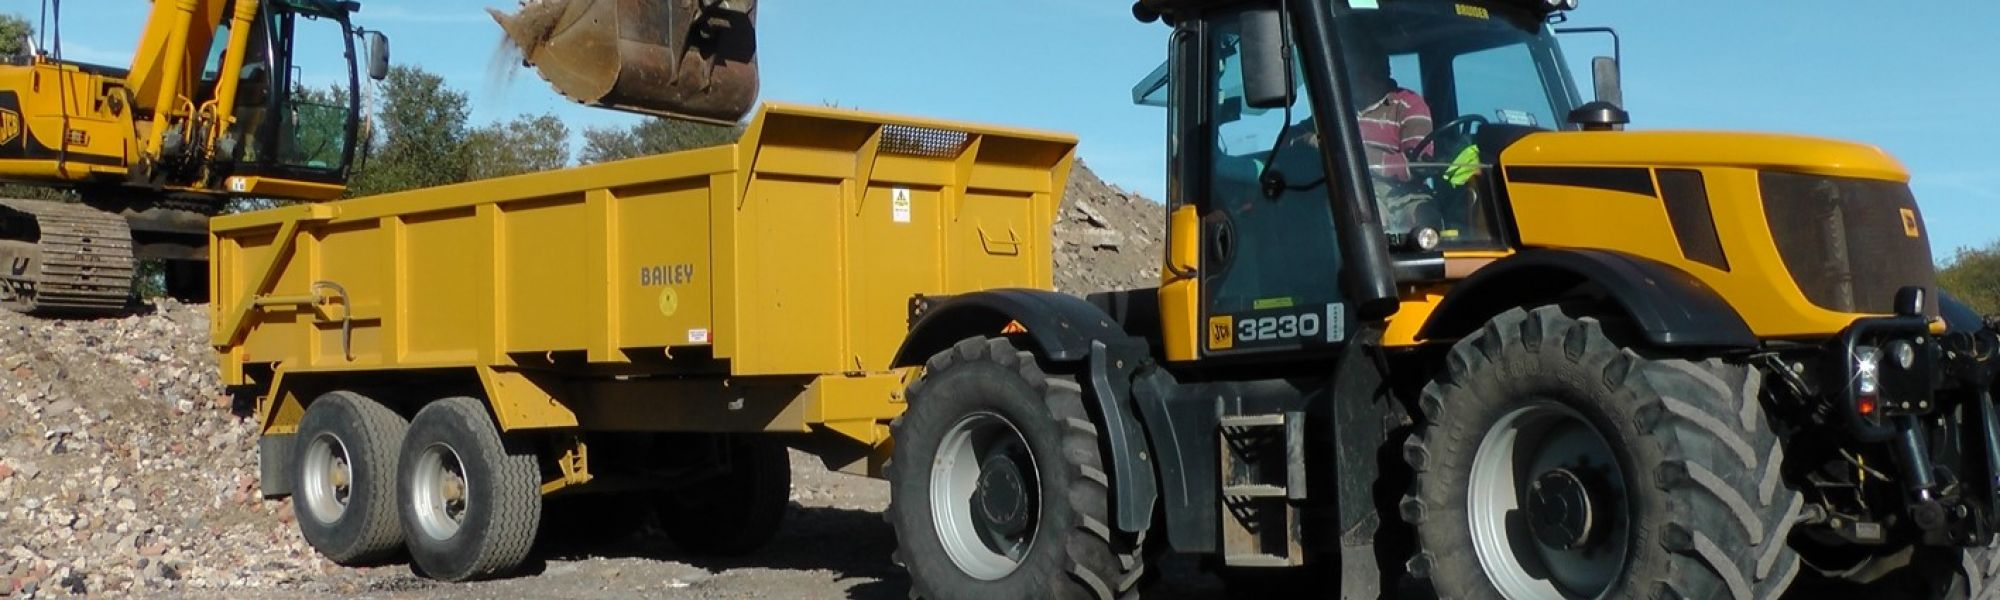 Plant Hire In Leicestershire